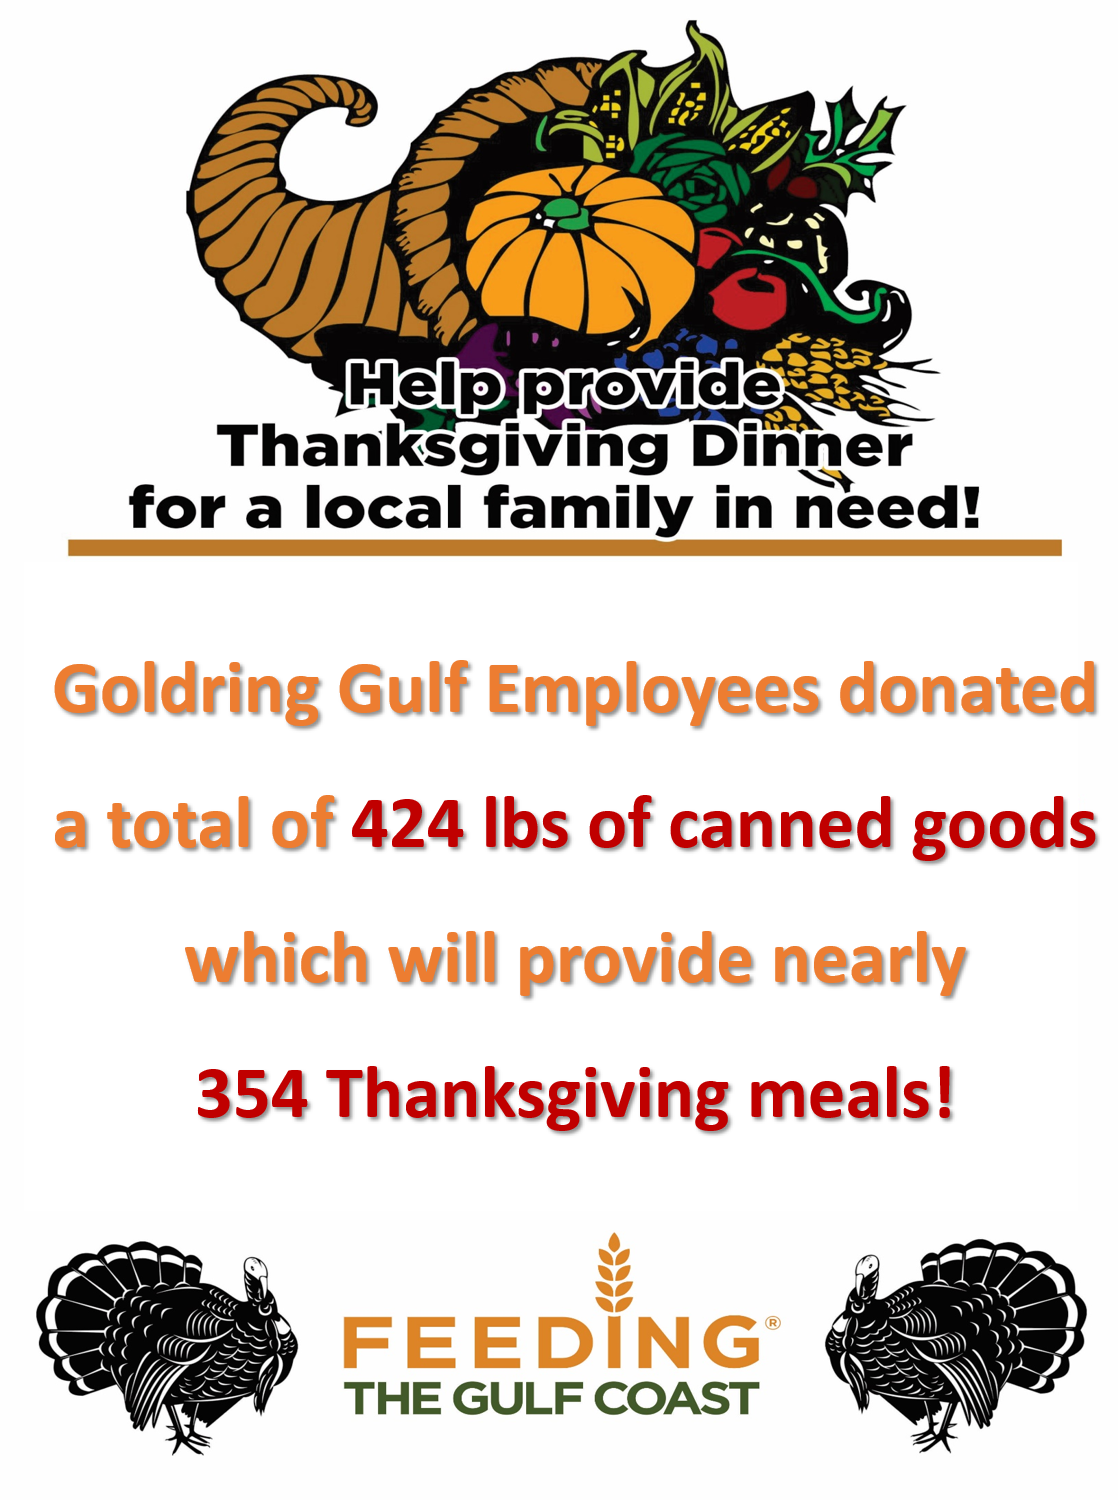 Goldring Gulf Employees donate over 400lbs of canned goods to Feeding the Gulf Coast!